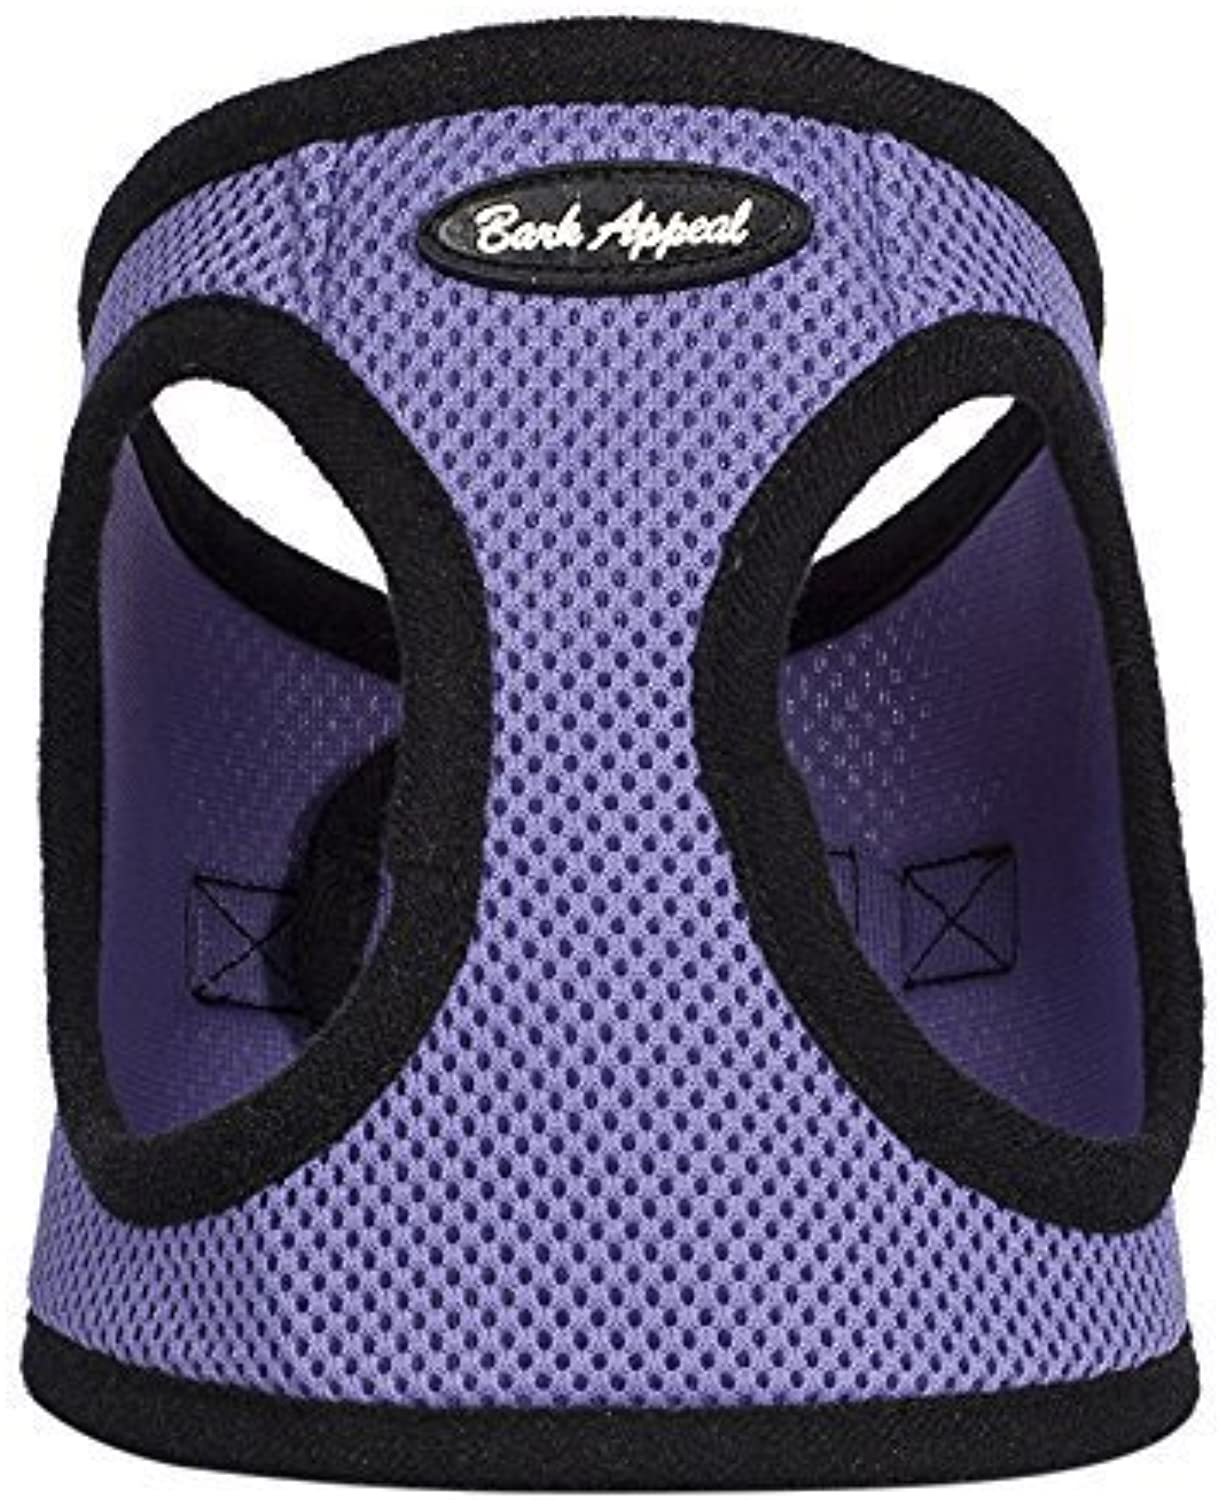 Bark Appeal Mesh Step in Harness, XXSmall, Lavender by Bark Appeal